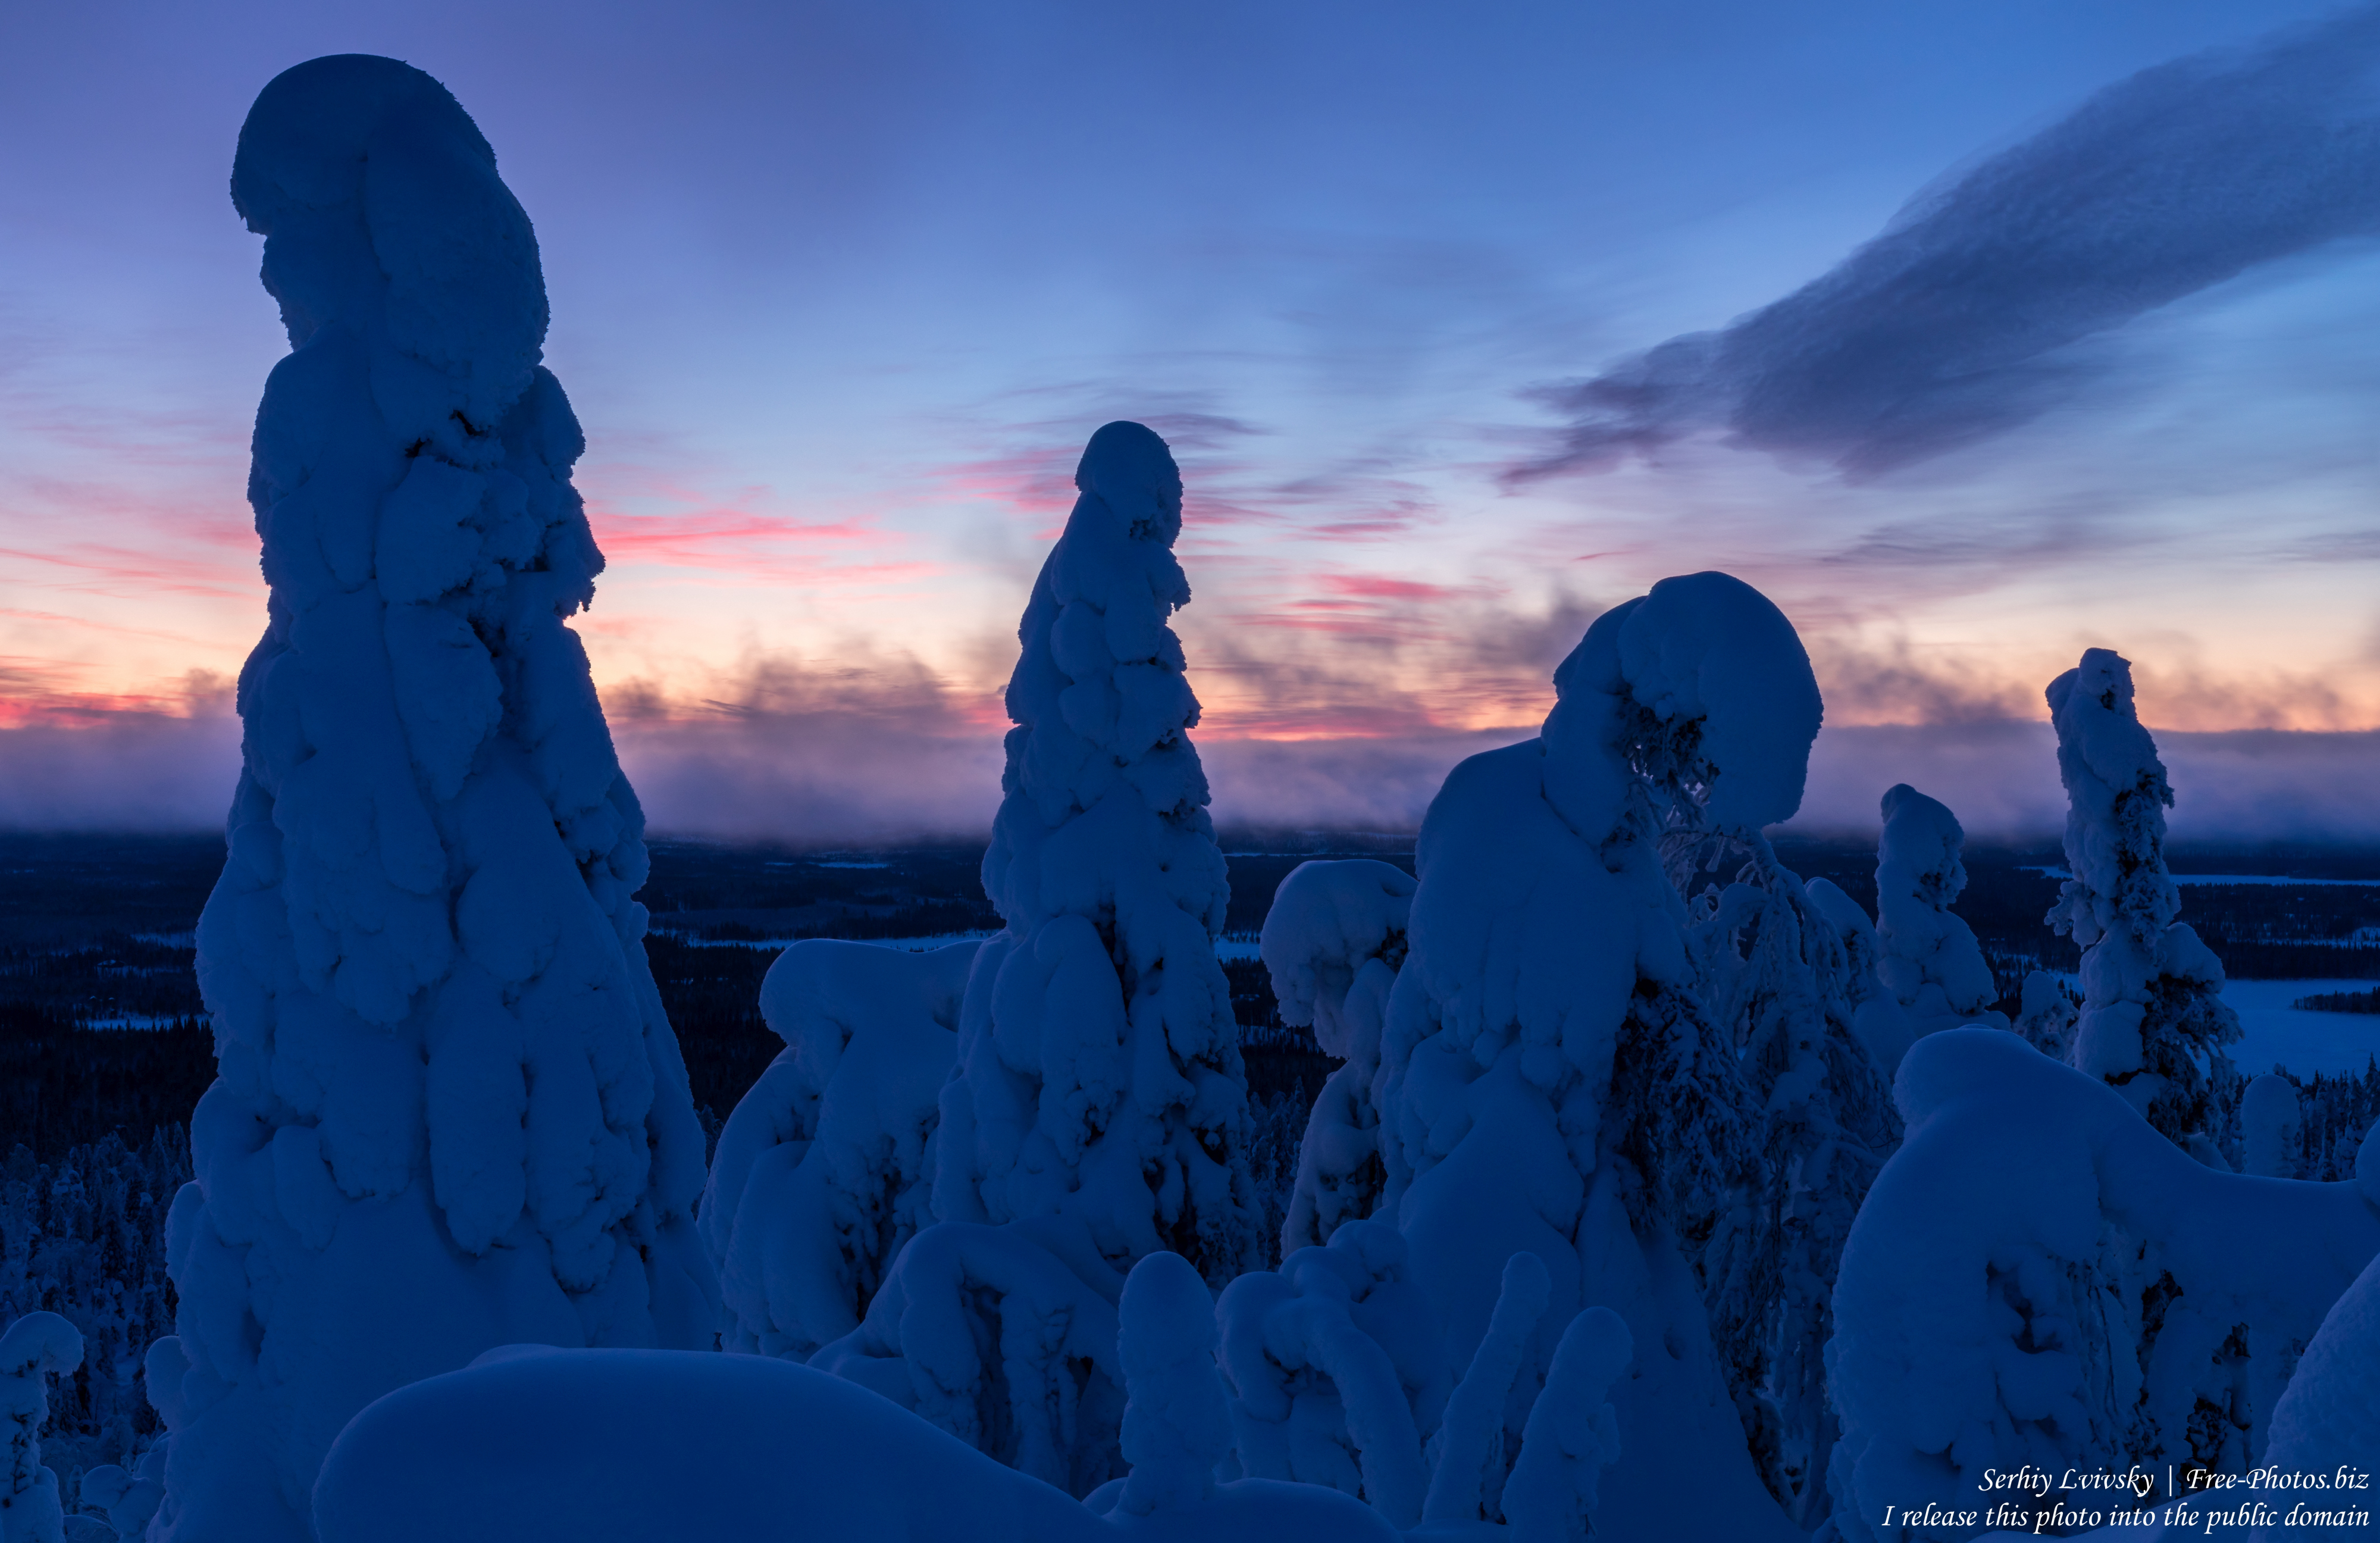 valtavaara_finland_photographed_in_january_2020_by_serhiy_lvivsky_45